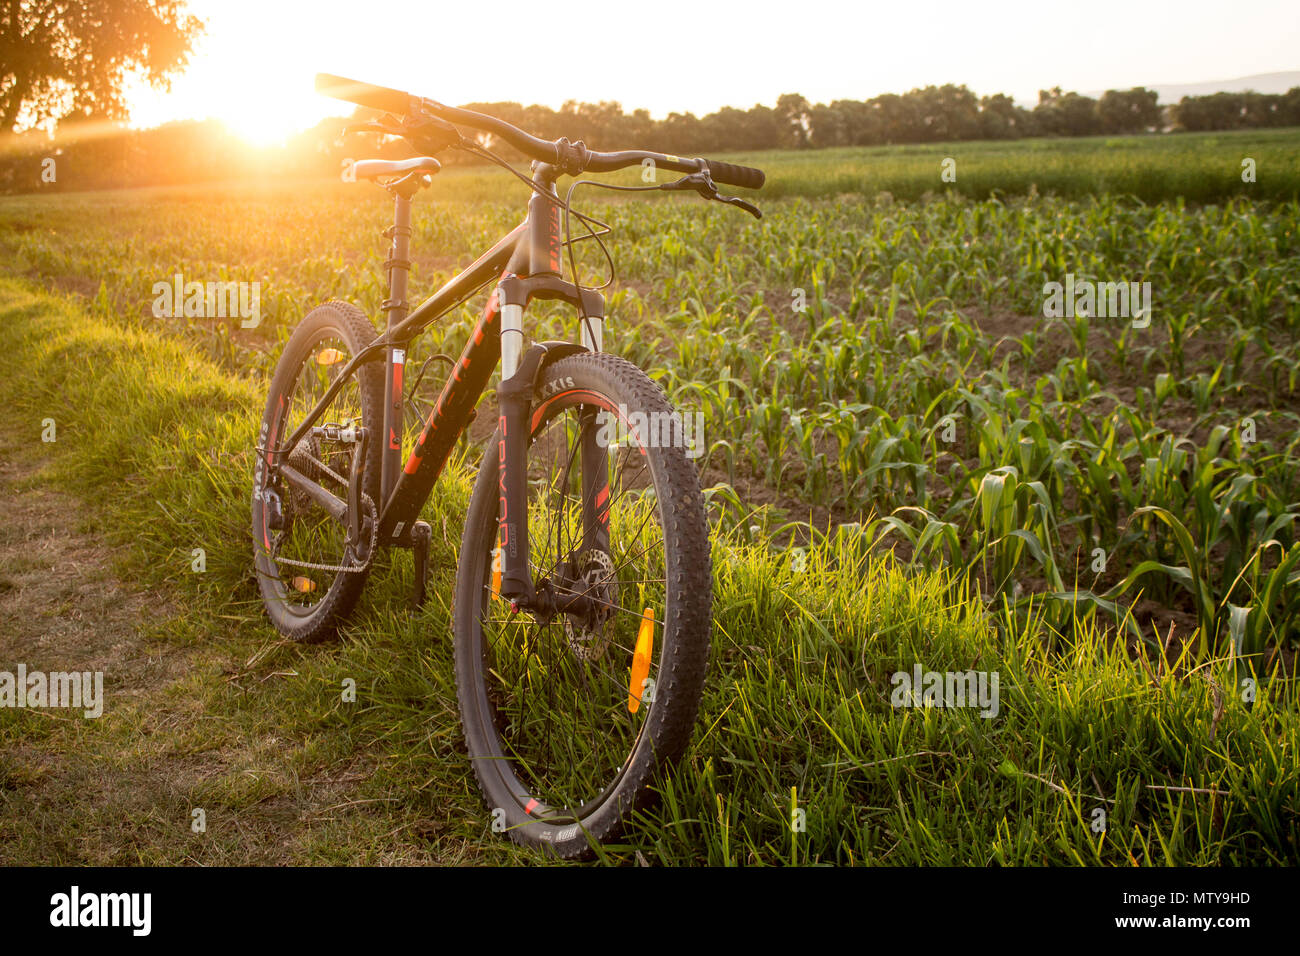 Tlaxcala, Mexico - May 27.2018. The Giant Talon is manufactured by the a Taiwanese company Giant,  that is recognized as the world's largest bicycle m - Stock Image